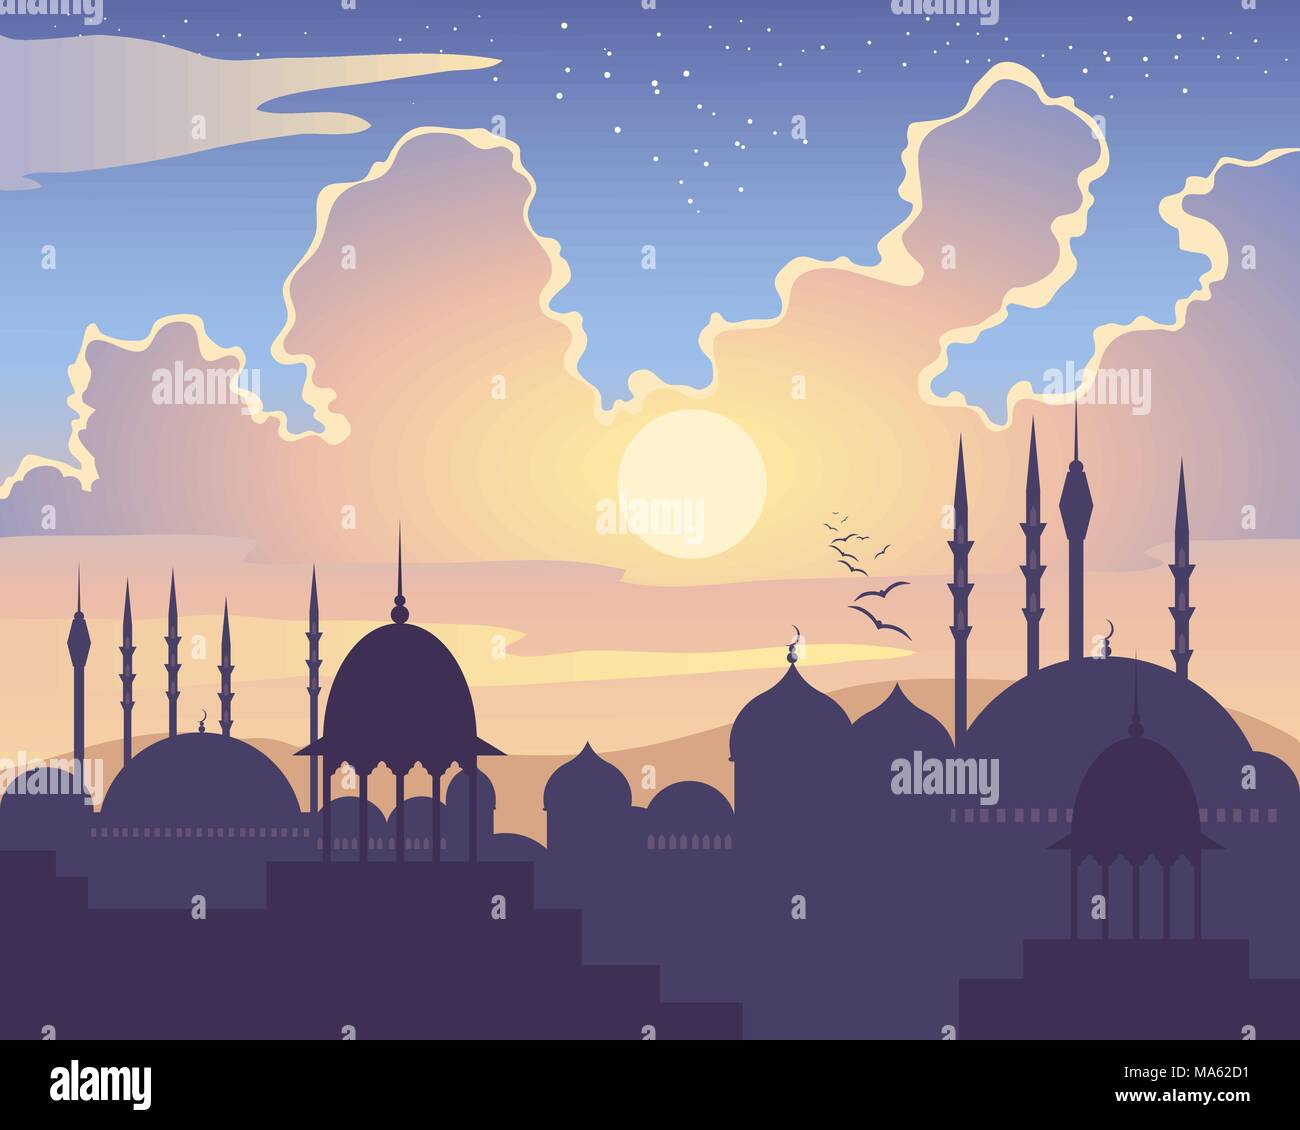 a vector illustration in eps 10 format of an Islamic skyline at sunset with Asian architecture mosques domes and minarets under a colorful starry sky - Stock Vector